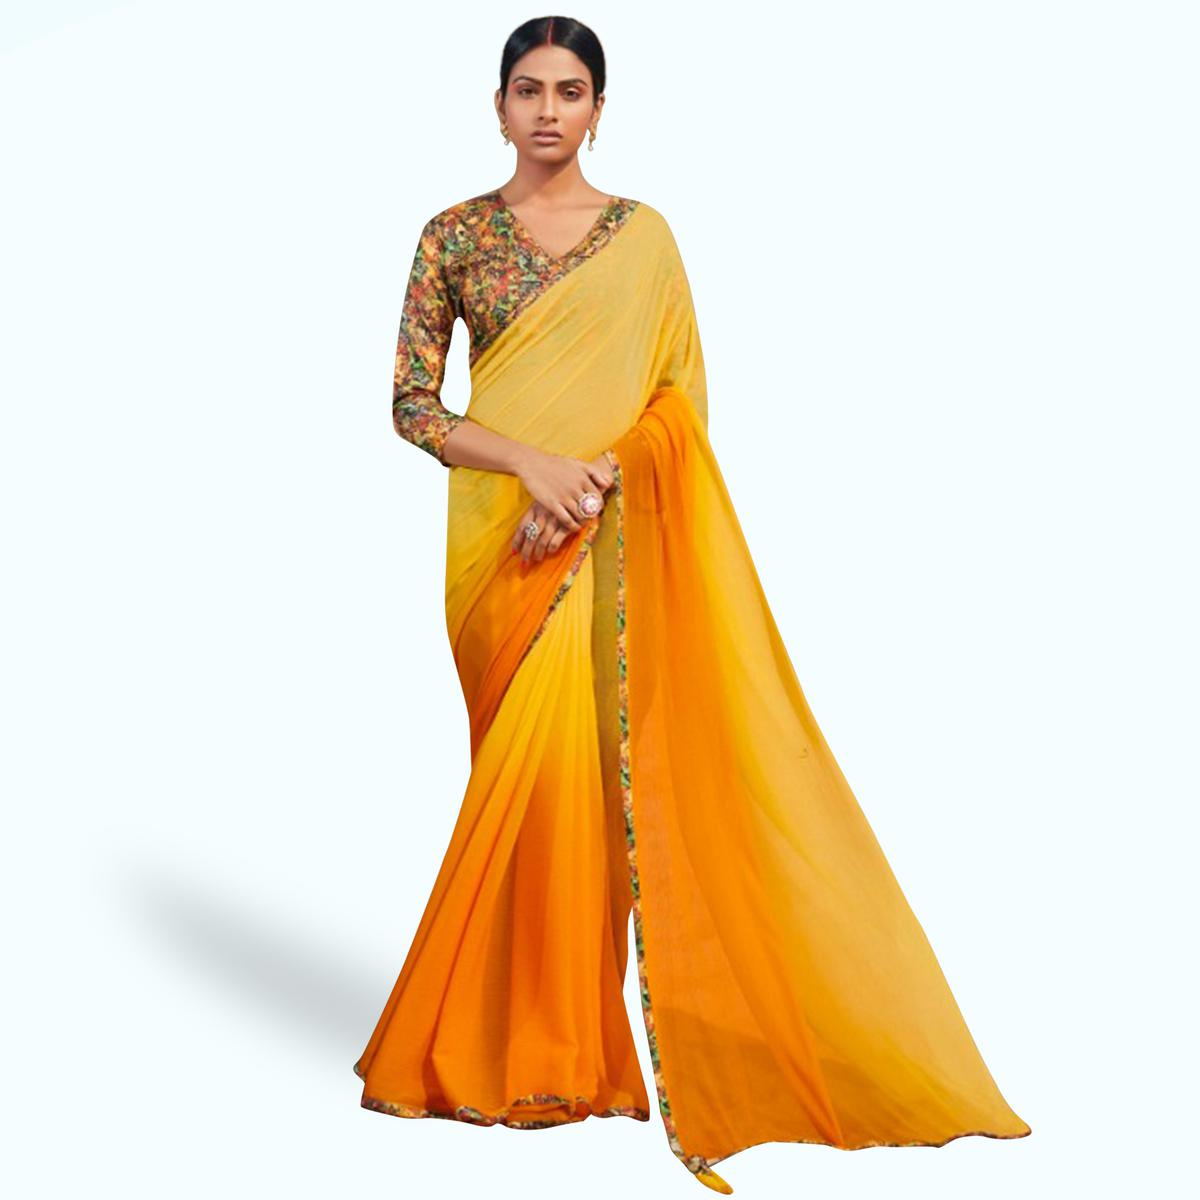 Elegant Yellow Colored Casual Wear Chiffon Saree